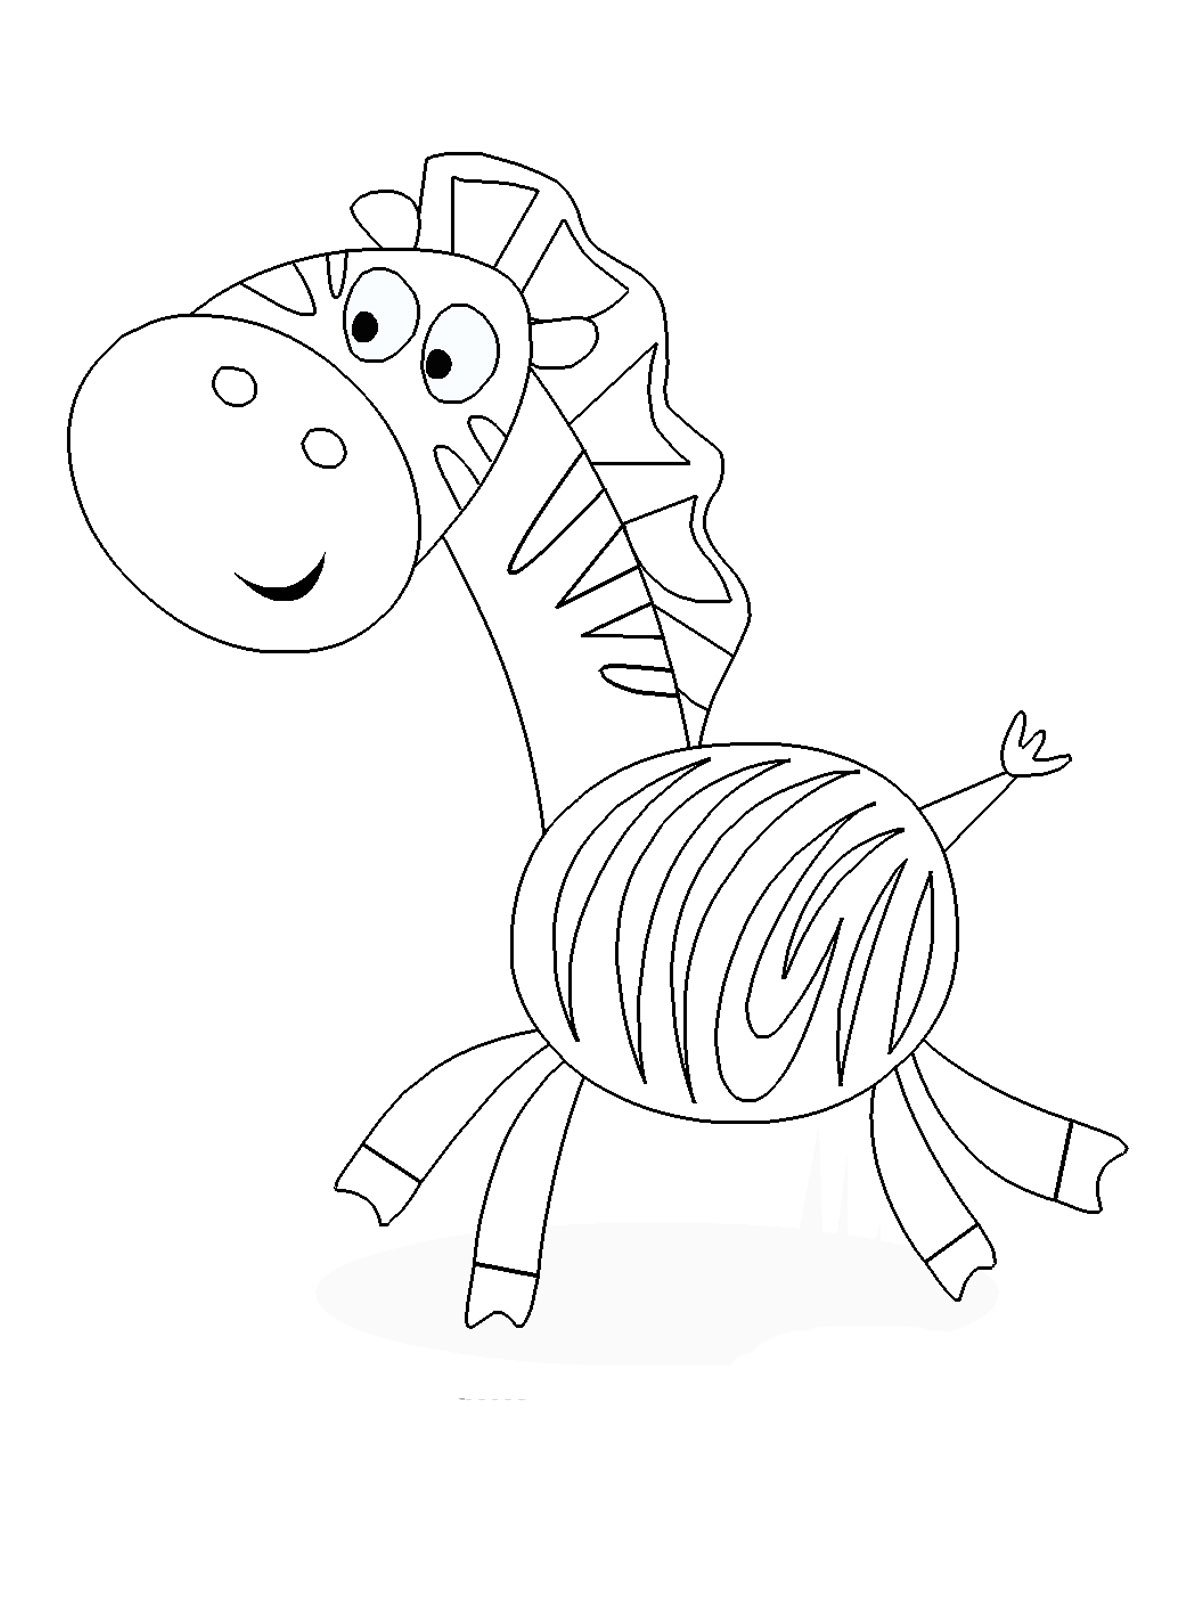 coloring template coloring for kids 9 free printable coloring pages for kids free premium for coloring coloring kids template